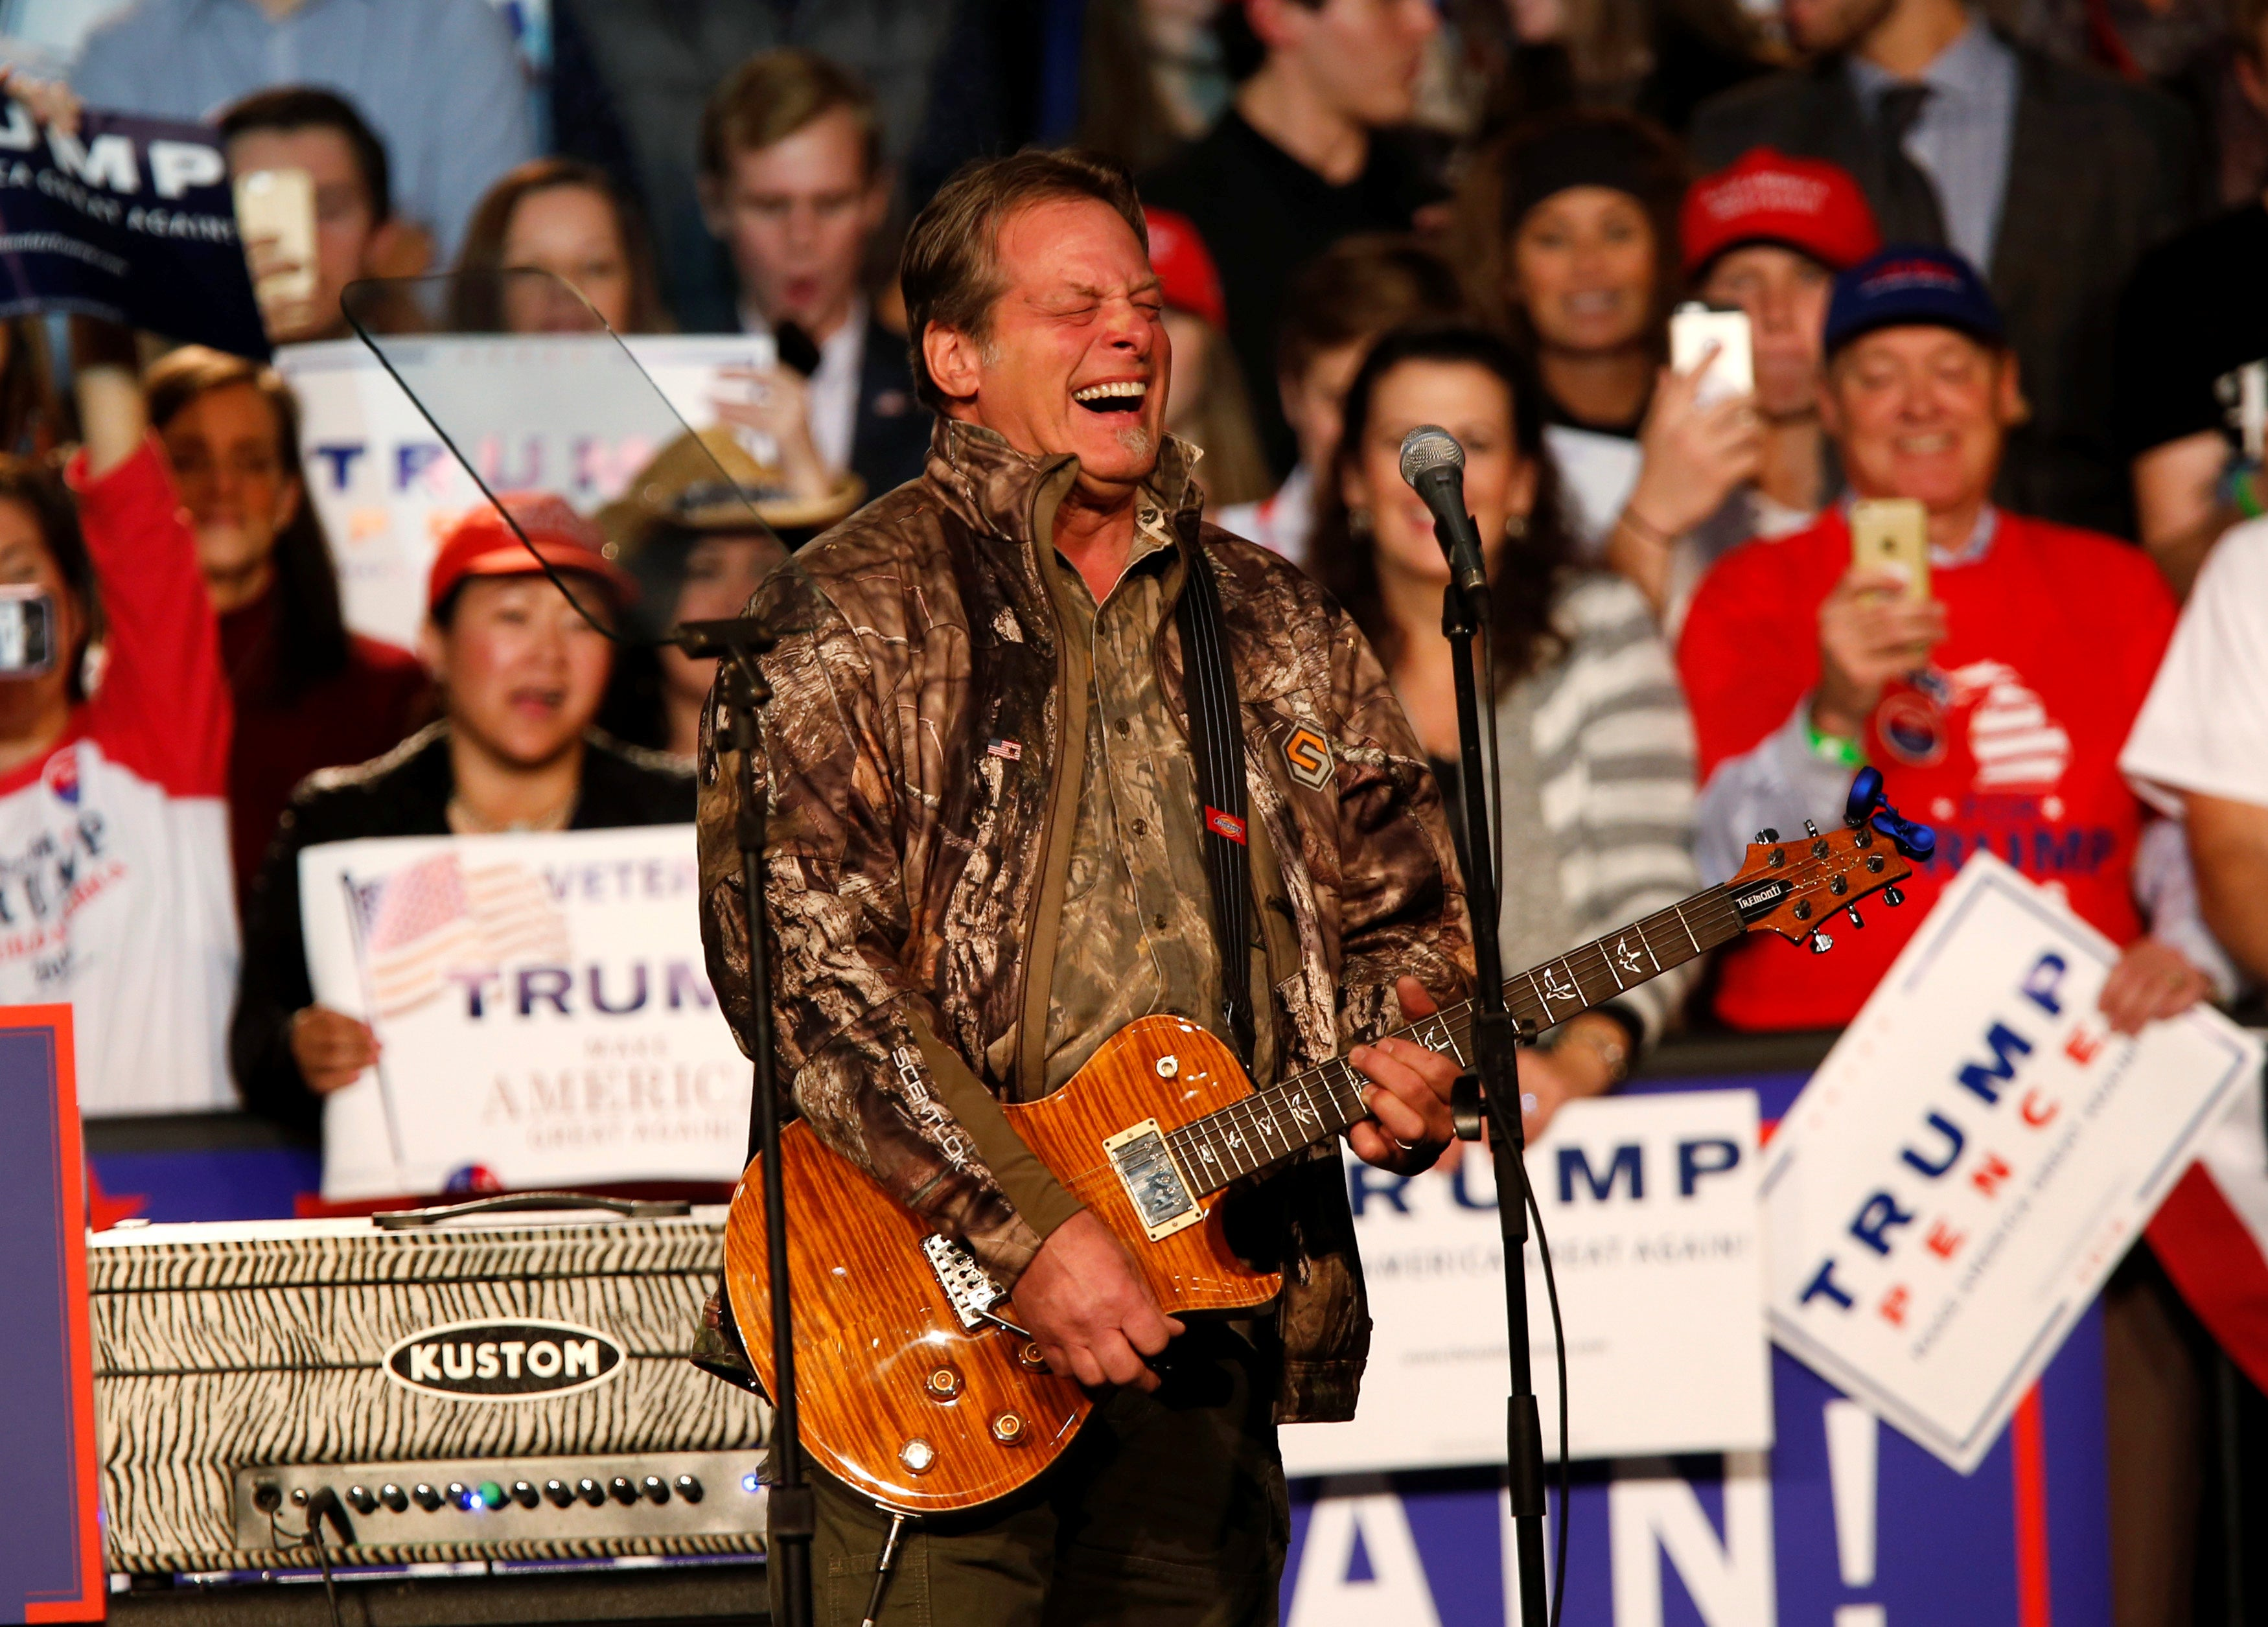 Musician and political activist Ted Nugent performs for the audience during a campaign rally for Donald Trump at the Devos Place in Grand Rapids, Michigan November 7, 2016.